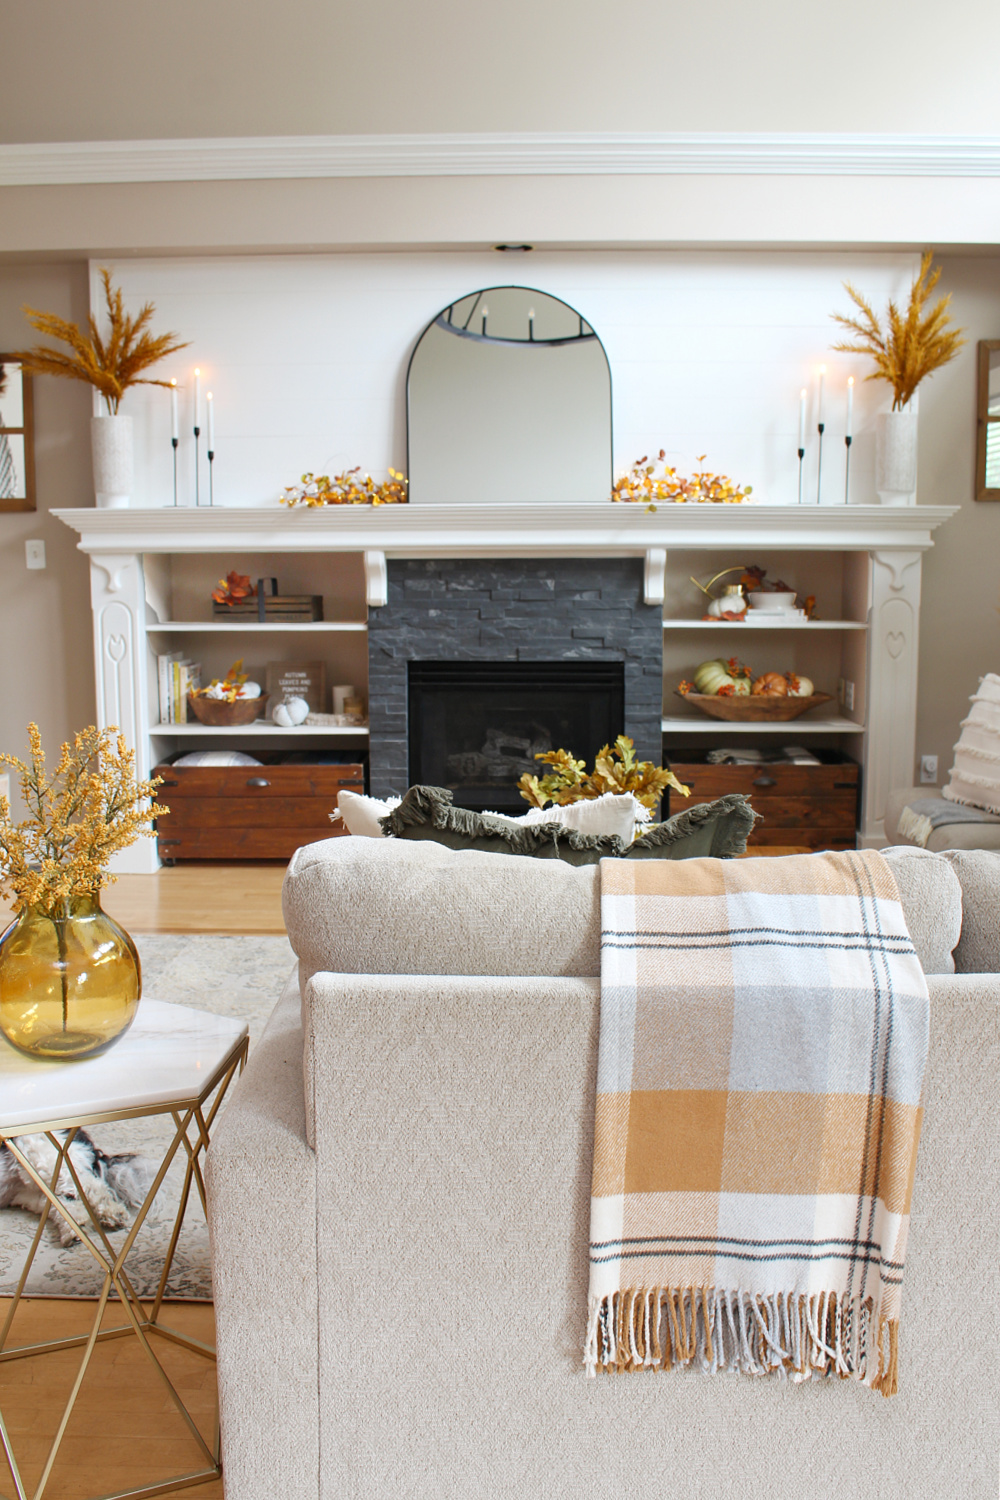 Fall mantel in a living room decorated for fall in traditional fall colors.